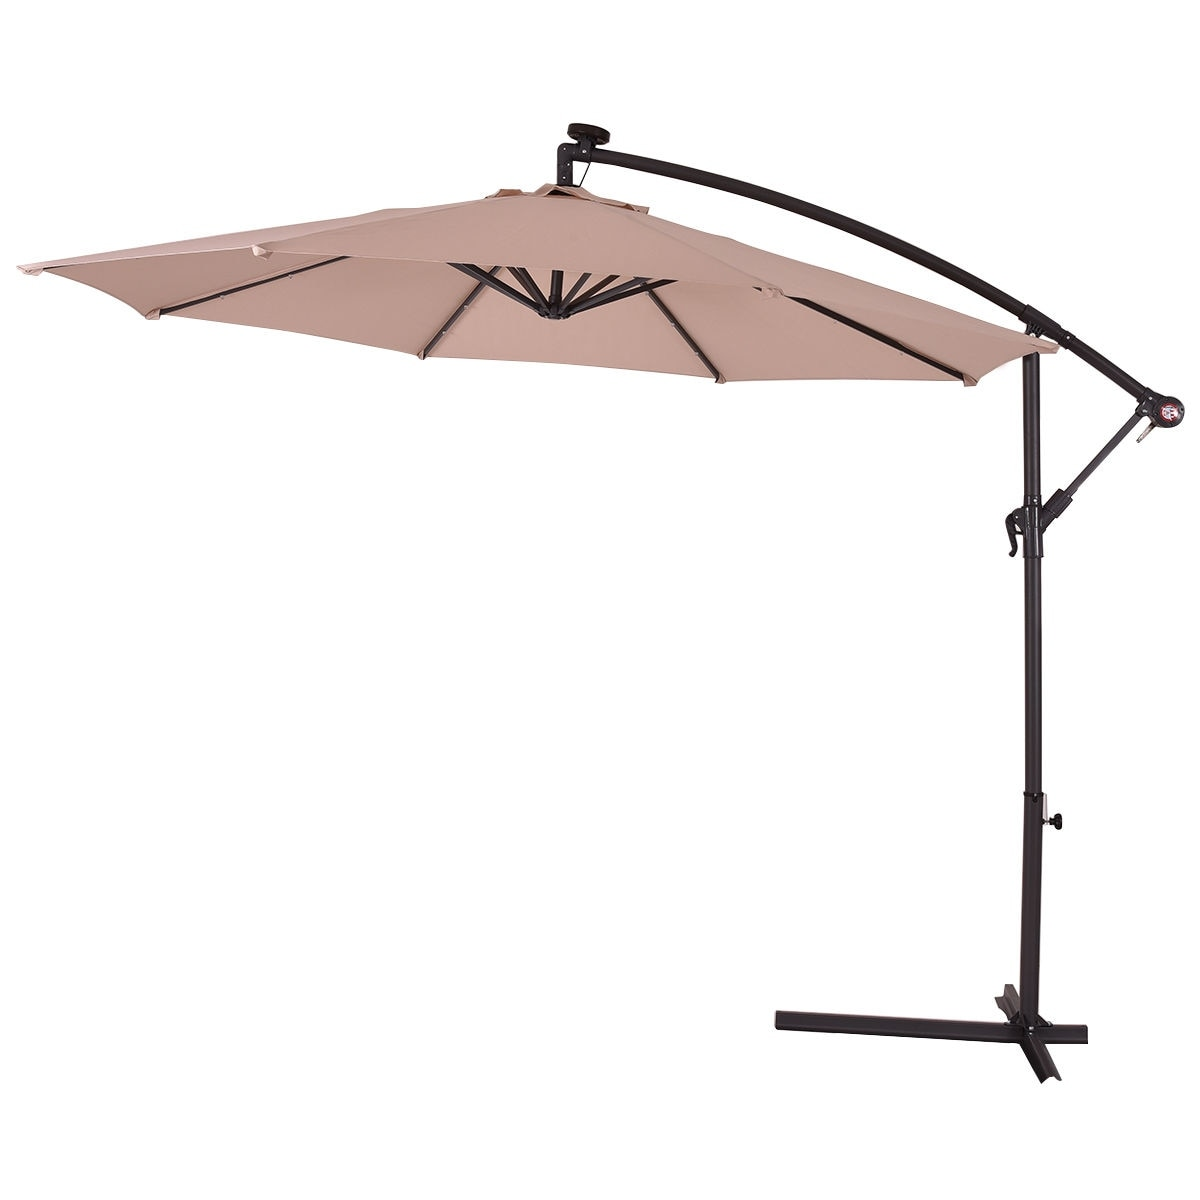 efa4837bea753 Shop Costway 10' Hanging Solar LED Umbrella Patio Sun Shade Offset Market W/Base  Beige - On Sale - Free Shipping Today - Overstock - 15801775